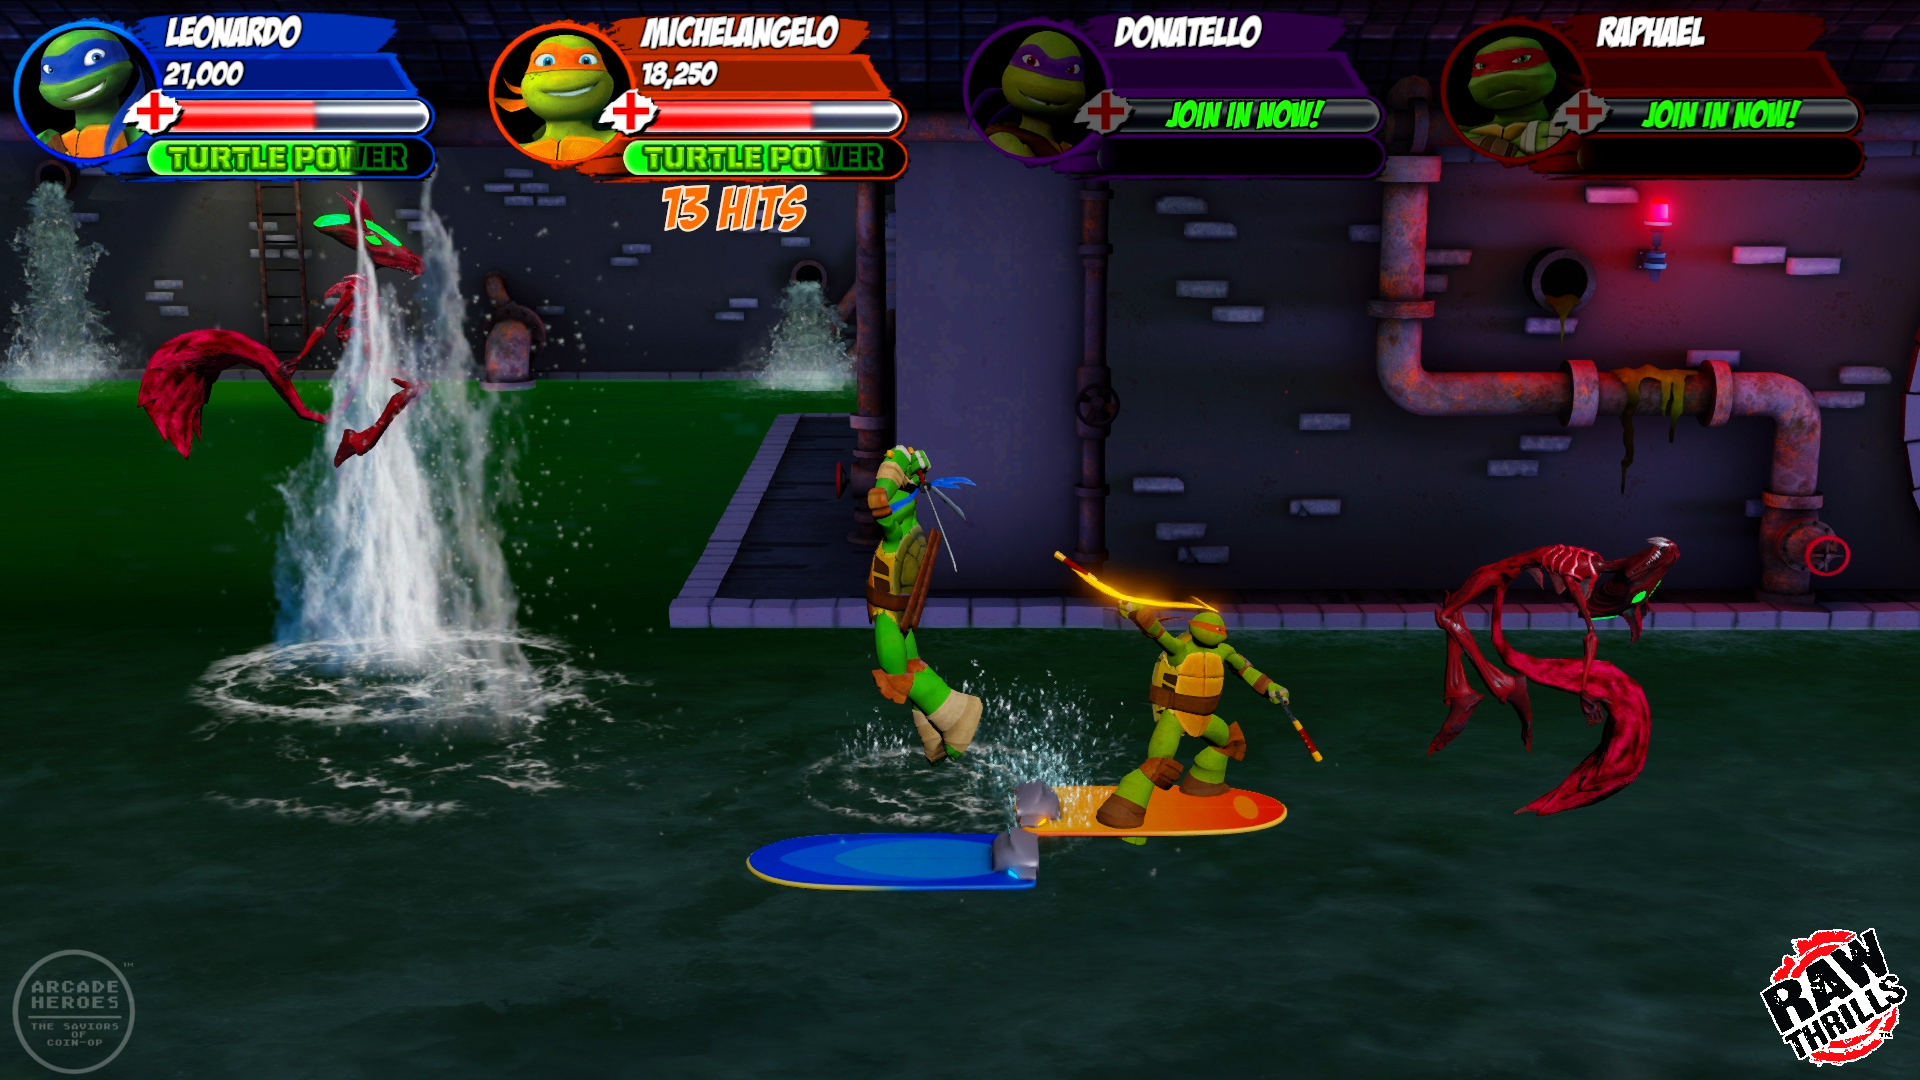 TMNT Arcade 2018, Raw Thrills. Sewer surfing